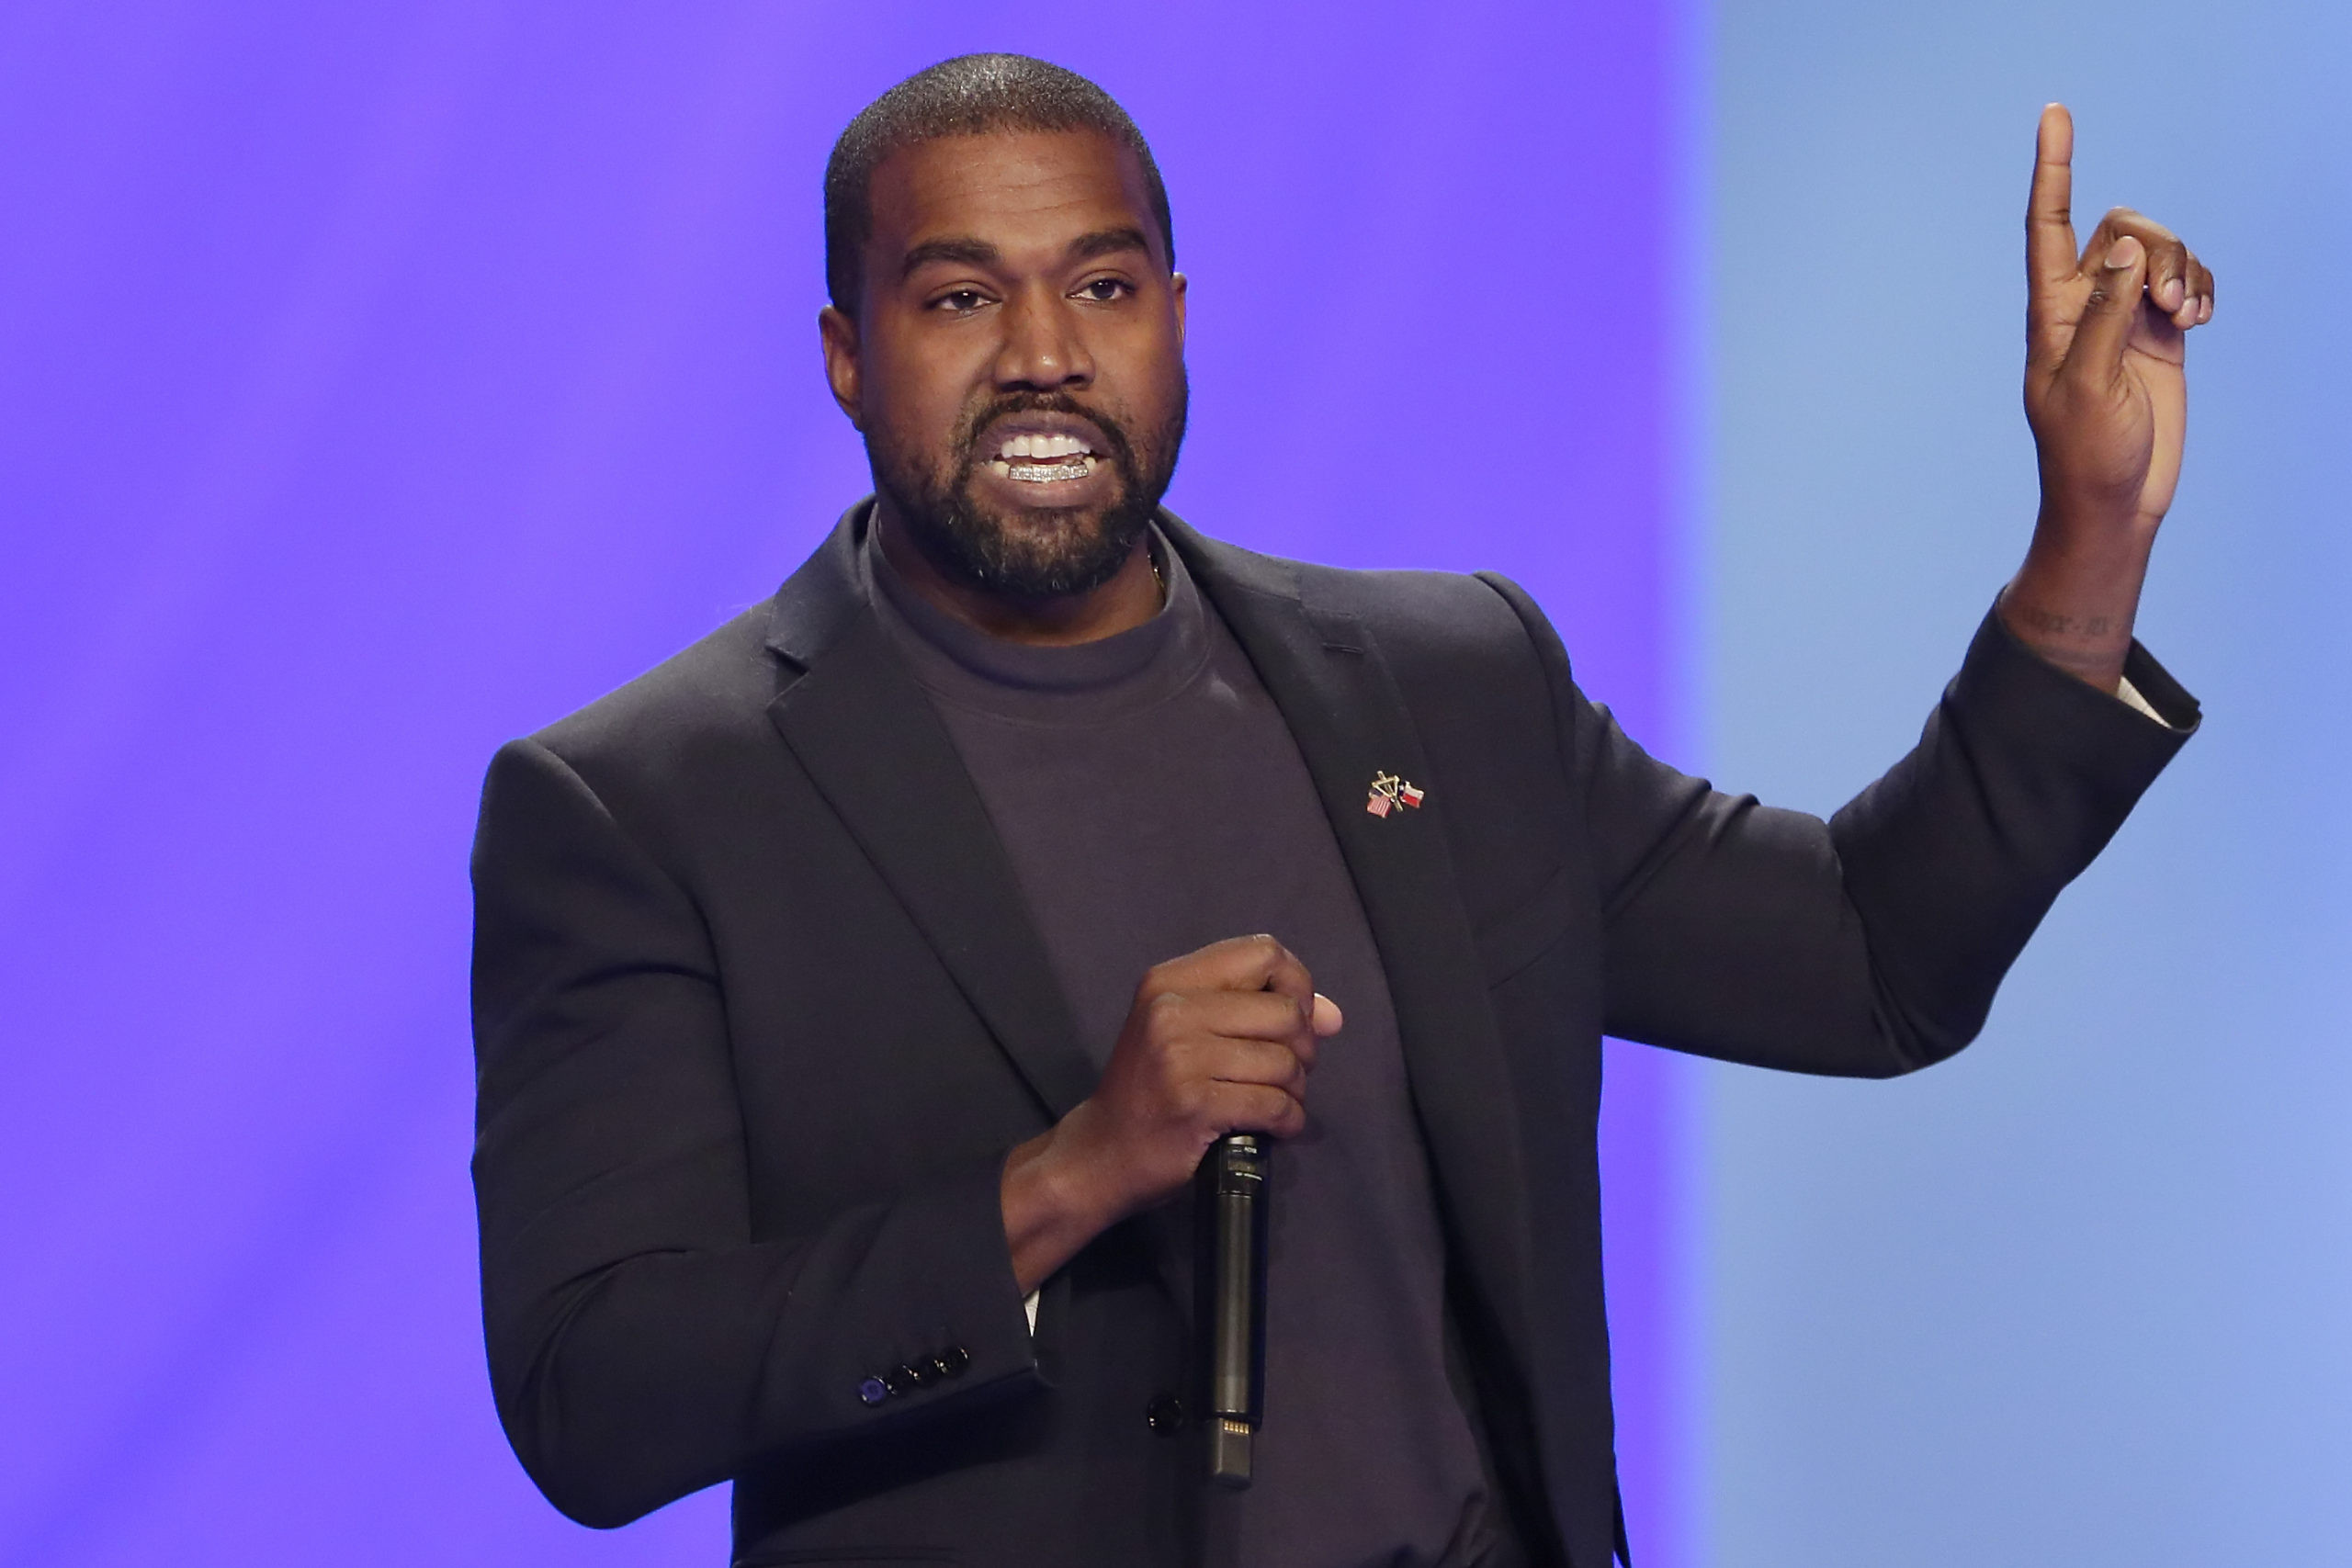 New report reveals Kanye West has spent $6.8 million on his Presidential campaign so far